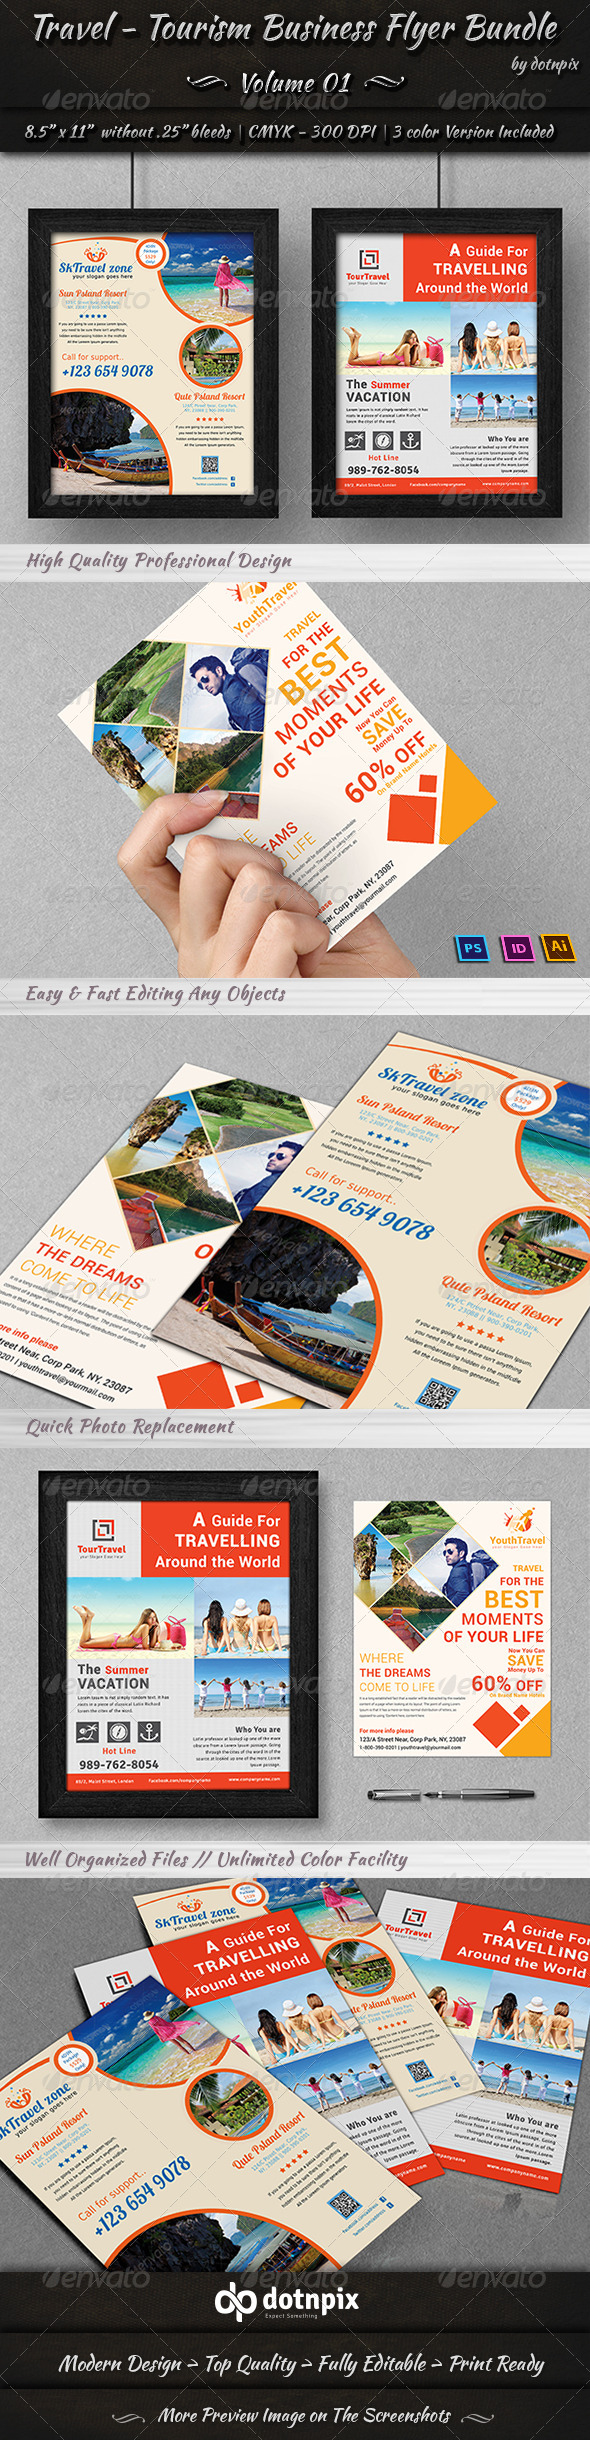 GraphicRiver Travel Tourism Business Flyer Bundle Volume 1 7258327